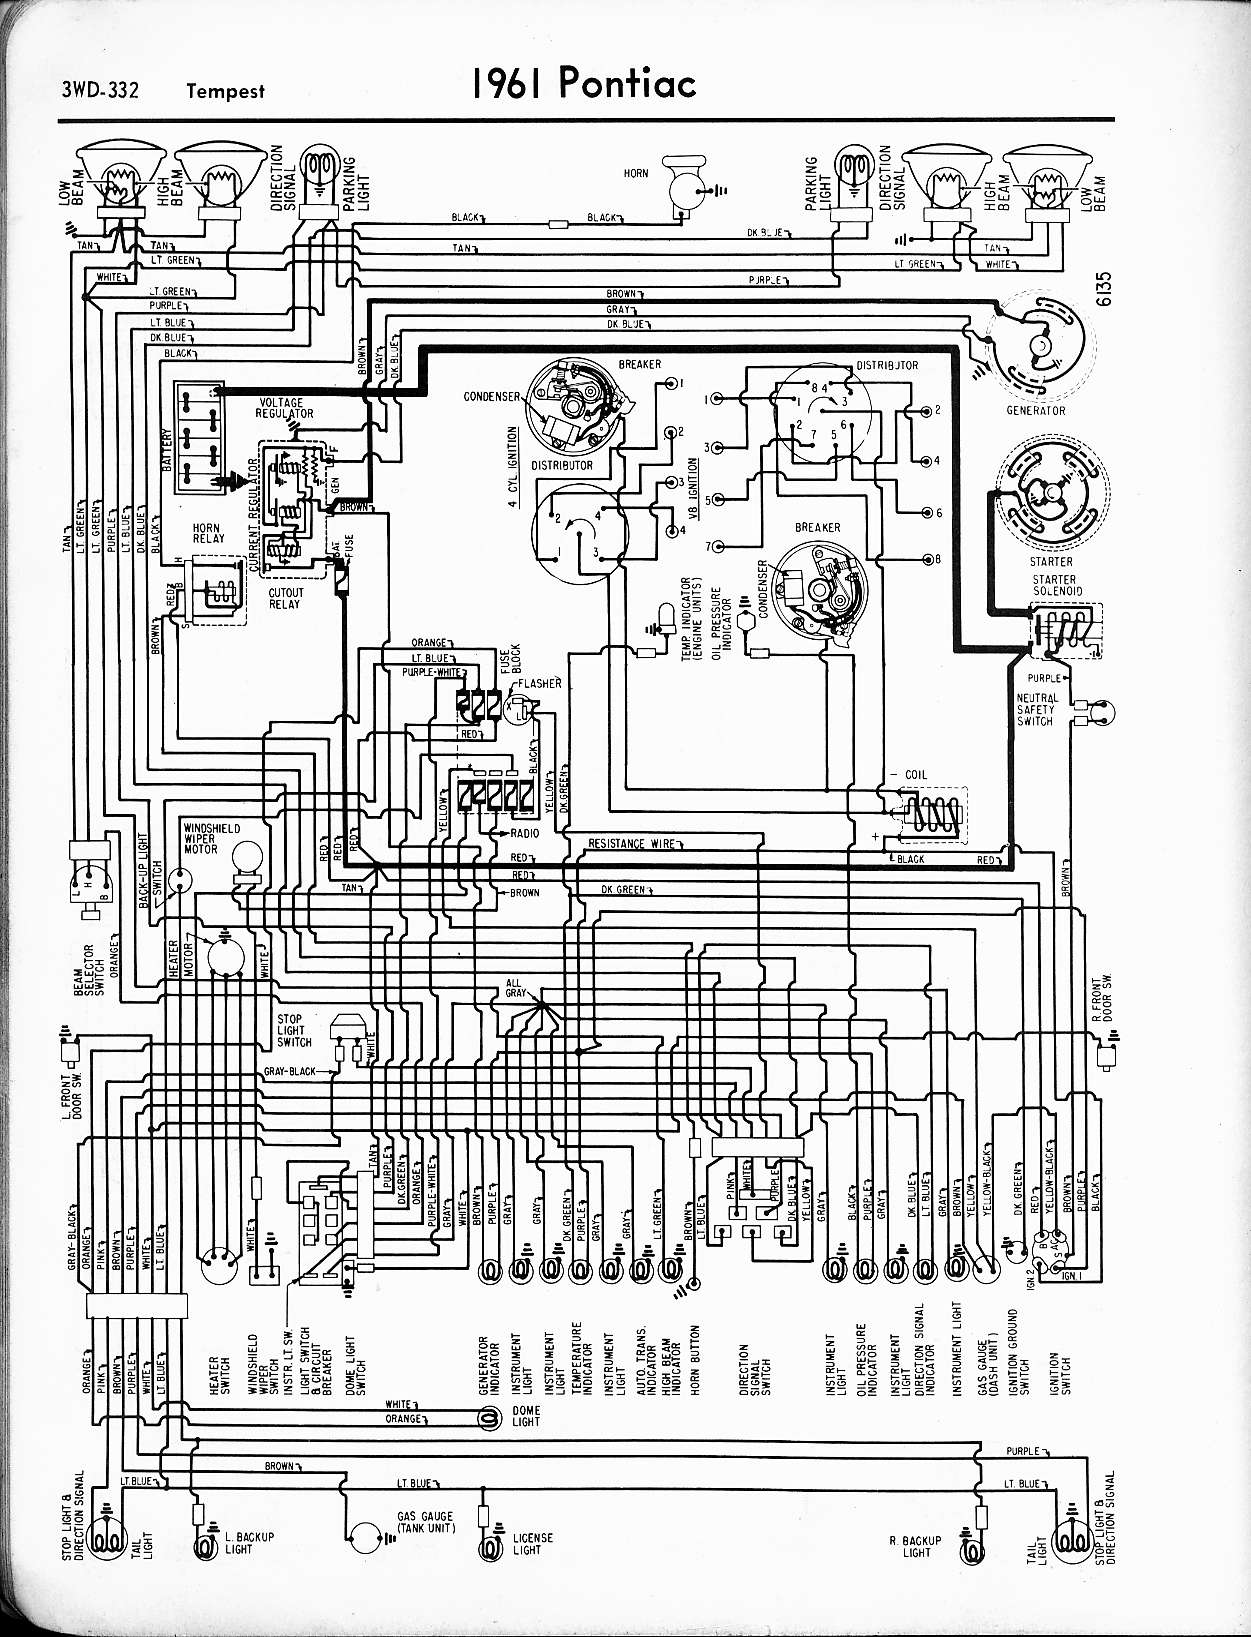 Wallace Racing Wiring Diagrams Pertronix Ignitor Wiring-Diagram 68 Gto  Wiring Diagram